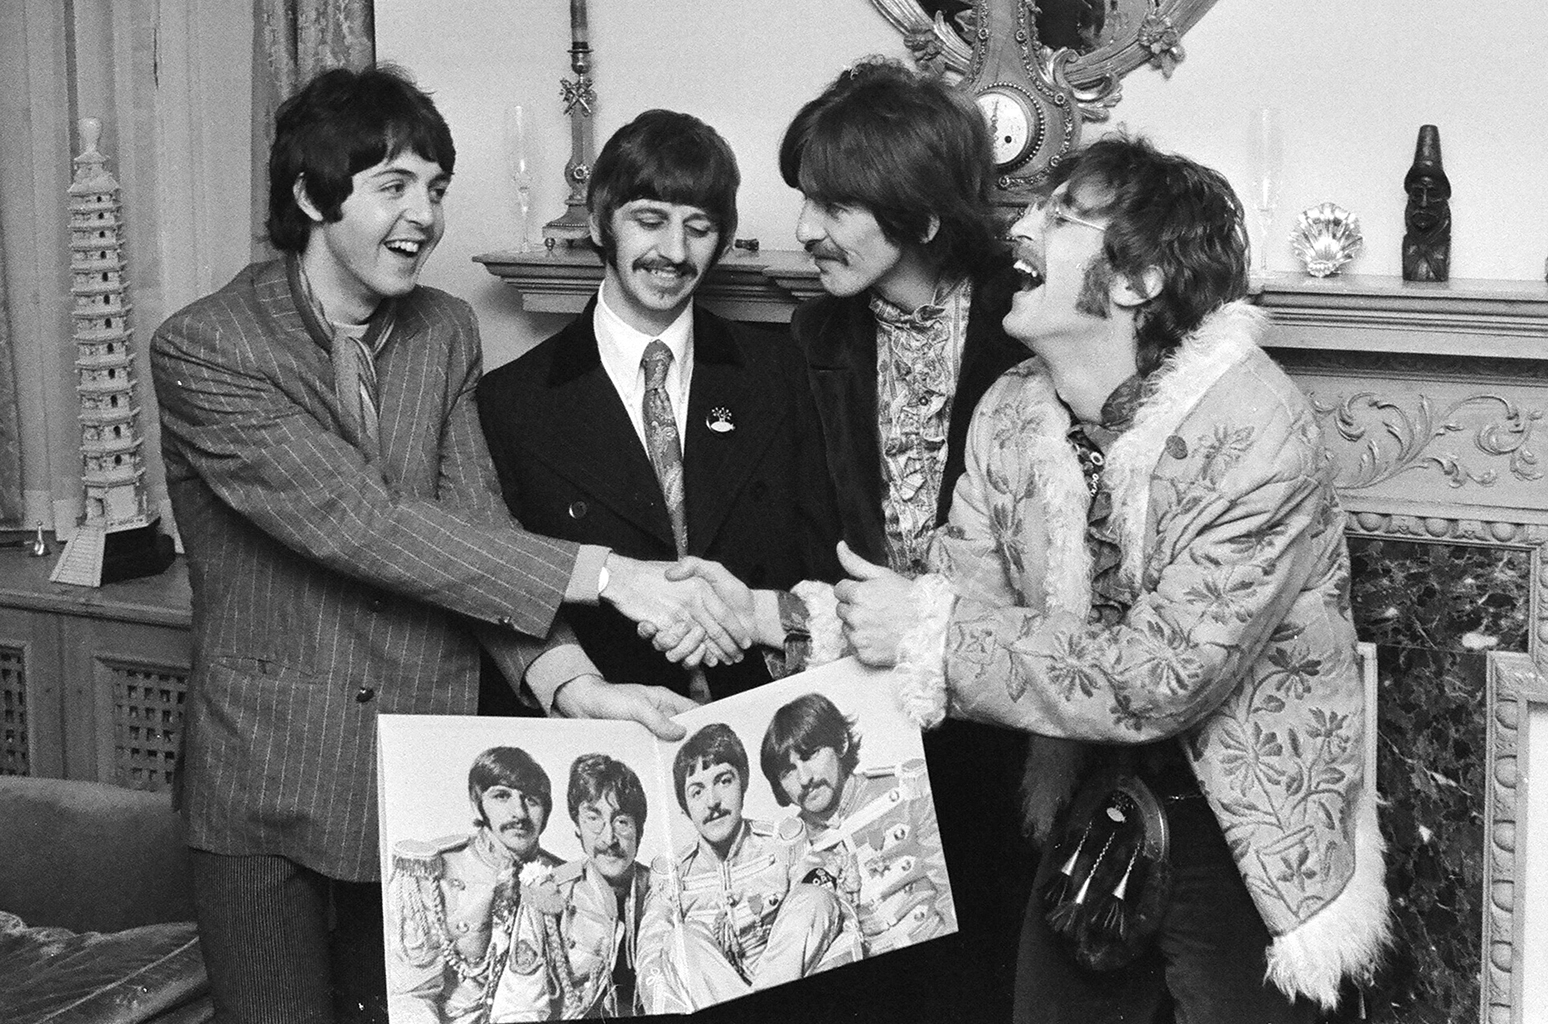 The Beatles with the finished album